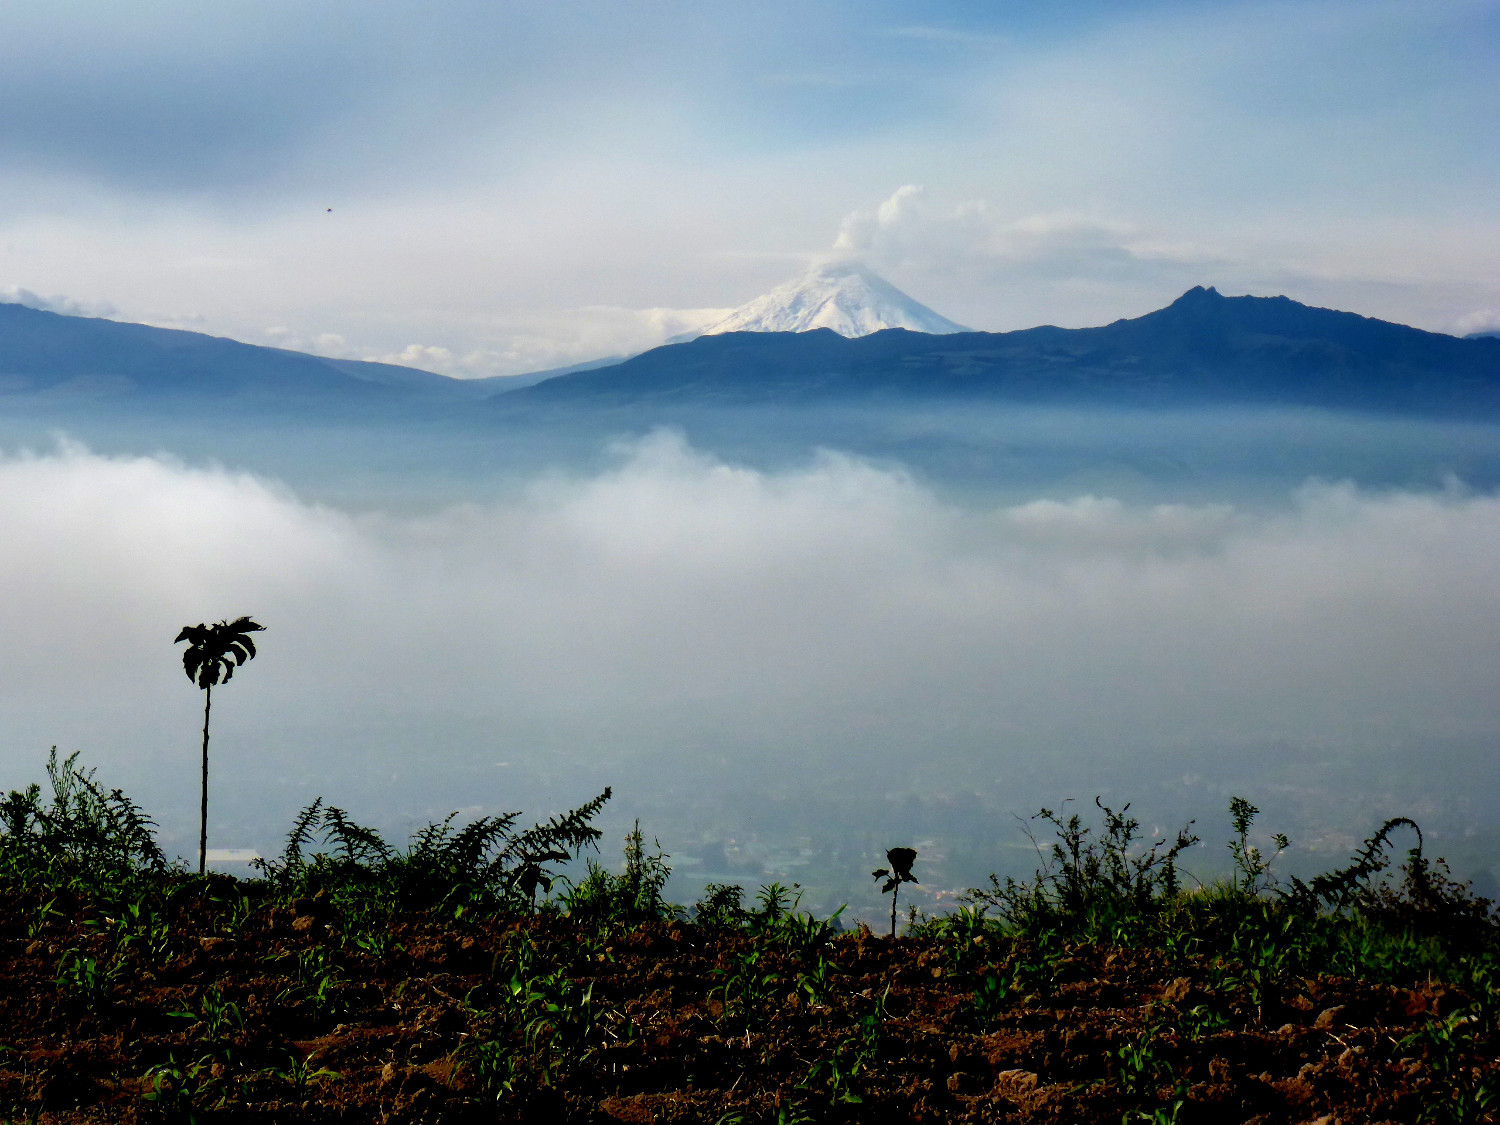 Ecuador hat wunderschöne Vulkane | Ecuador has outstandingly beautiful volcanoes